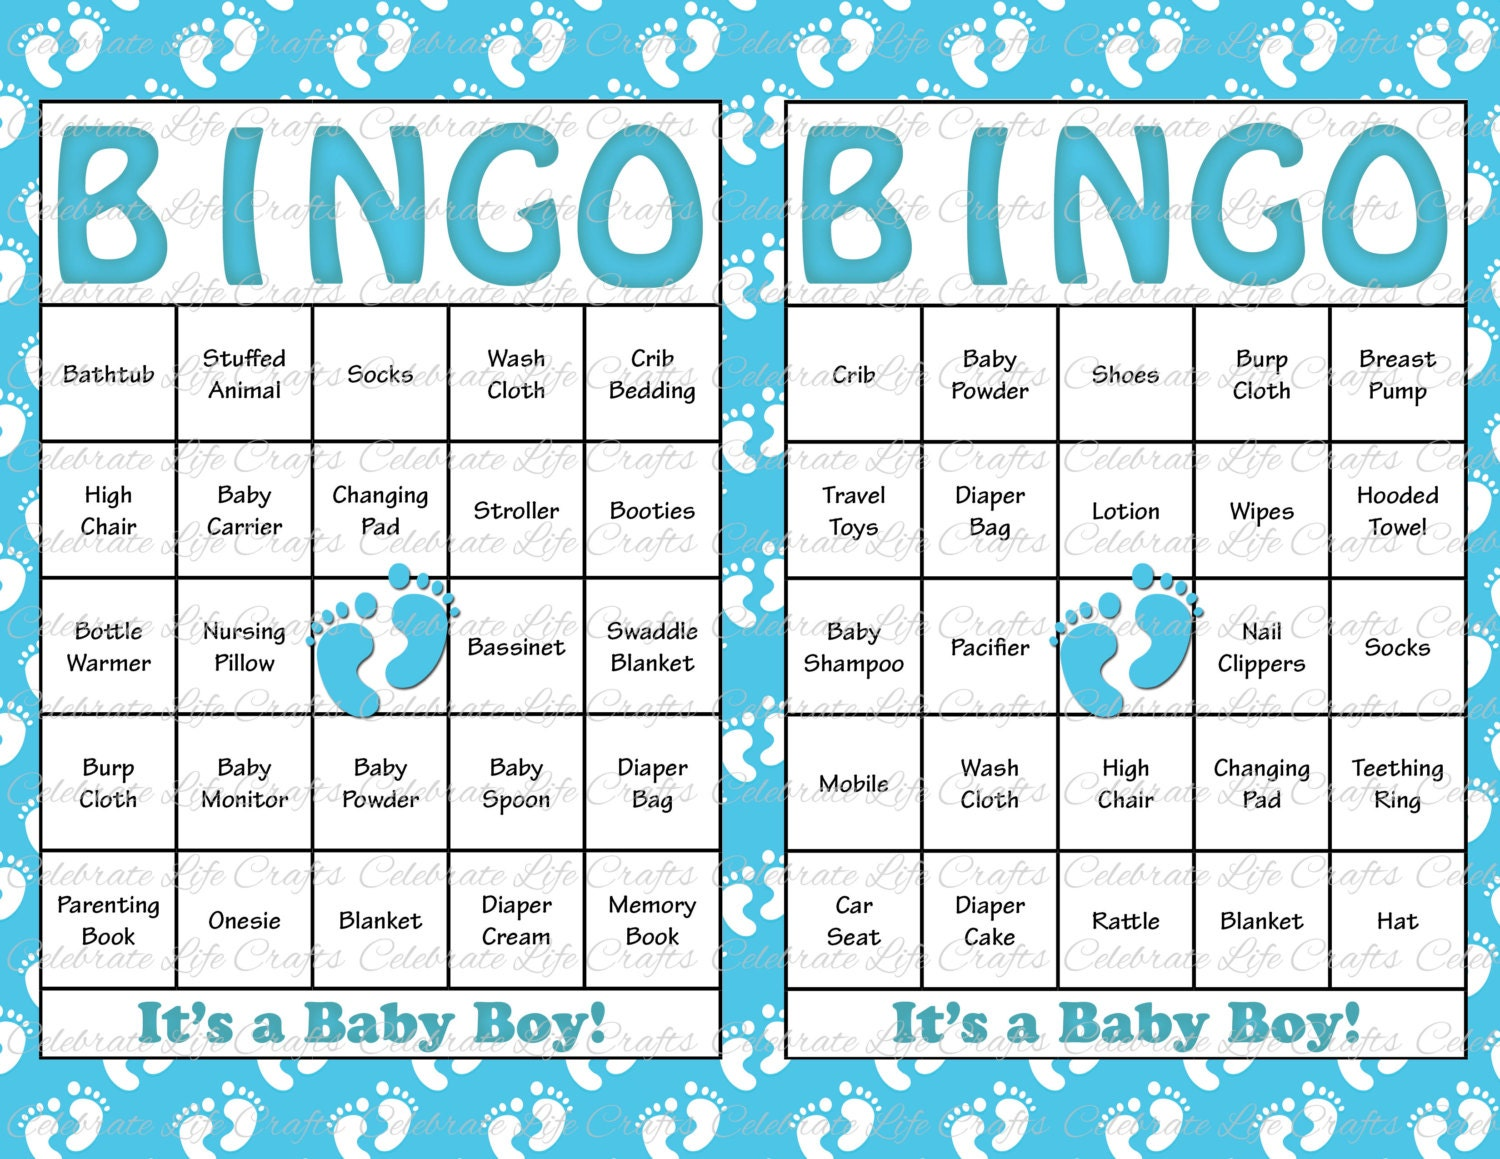 Punchy image with regard to free printable baby shower bingo cards for 30 people